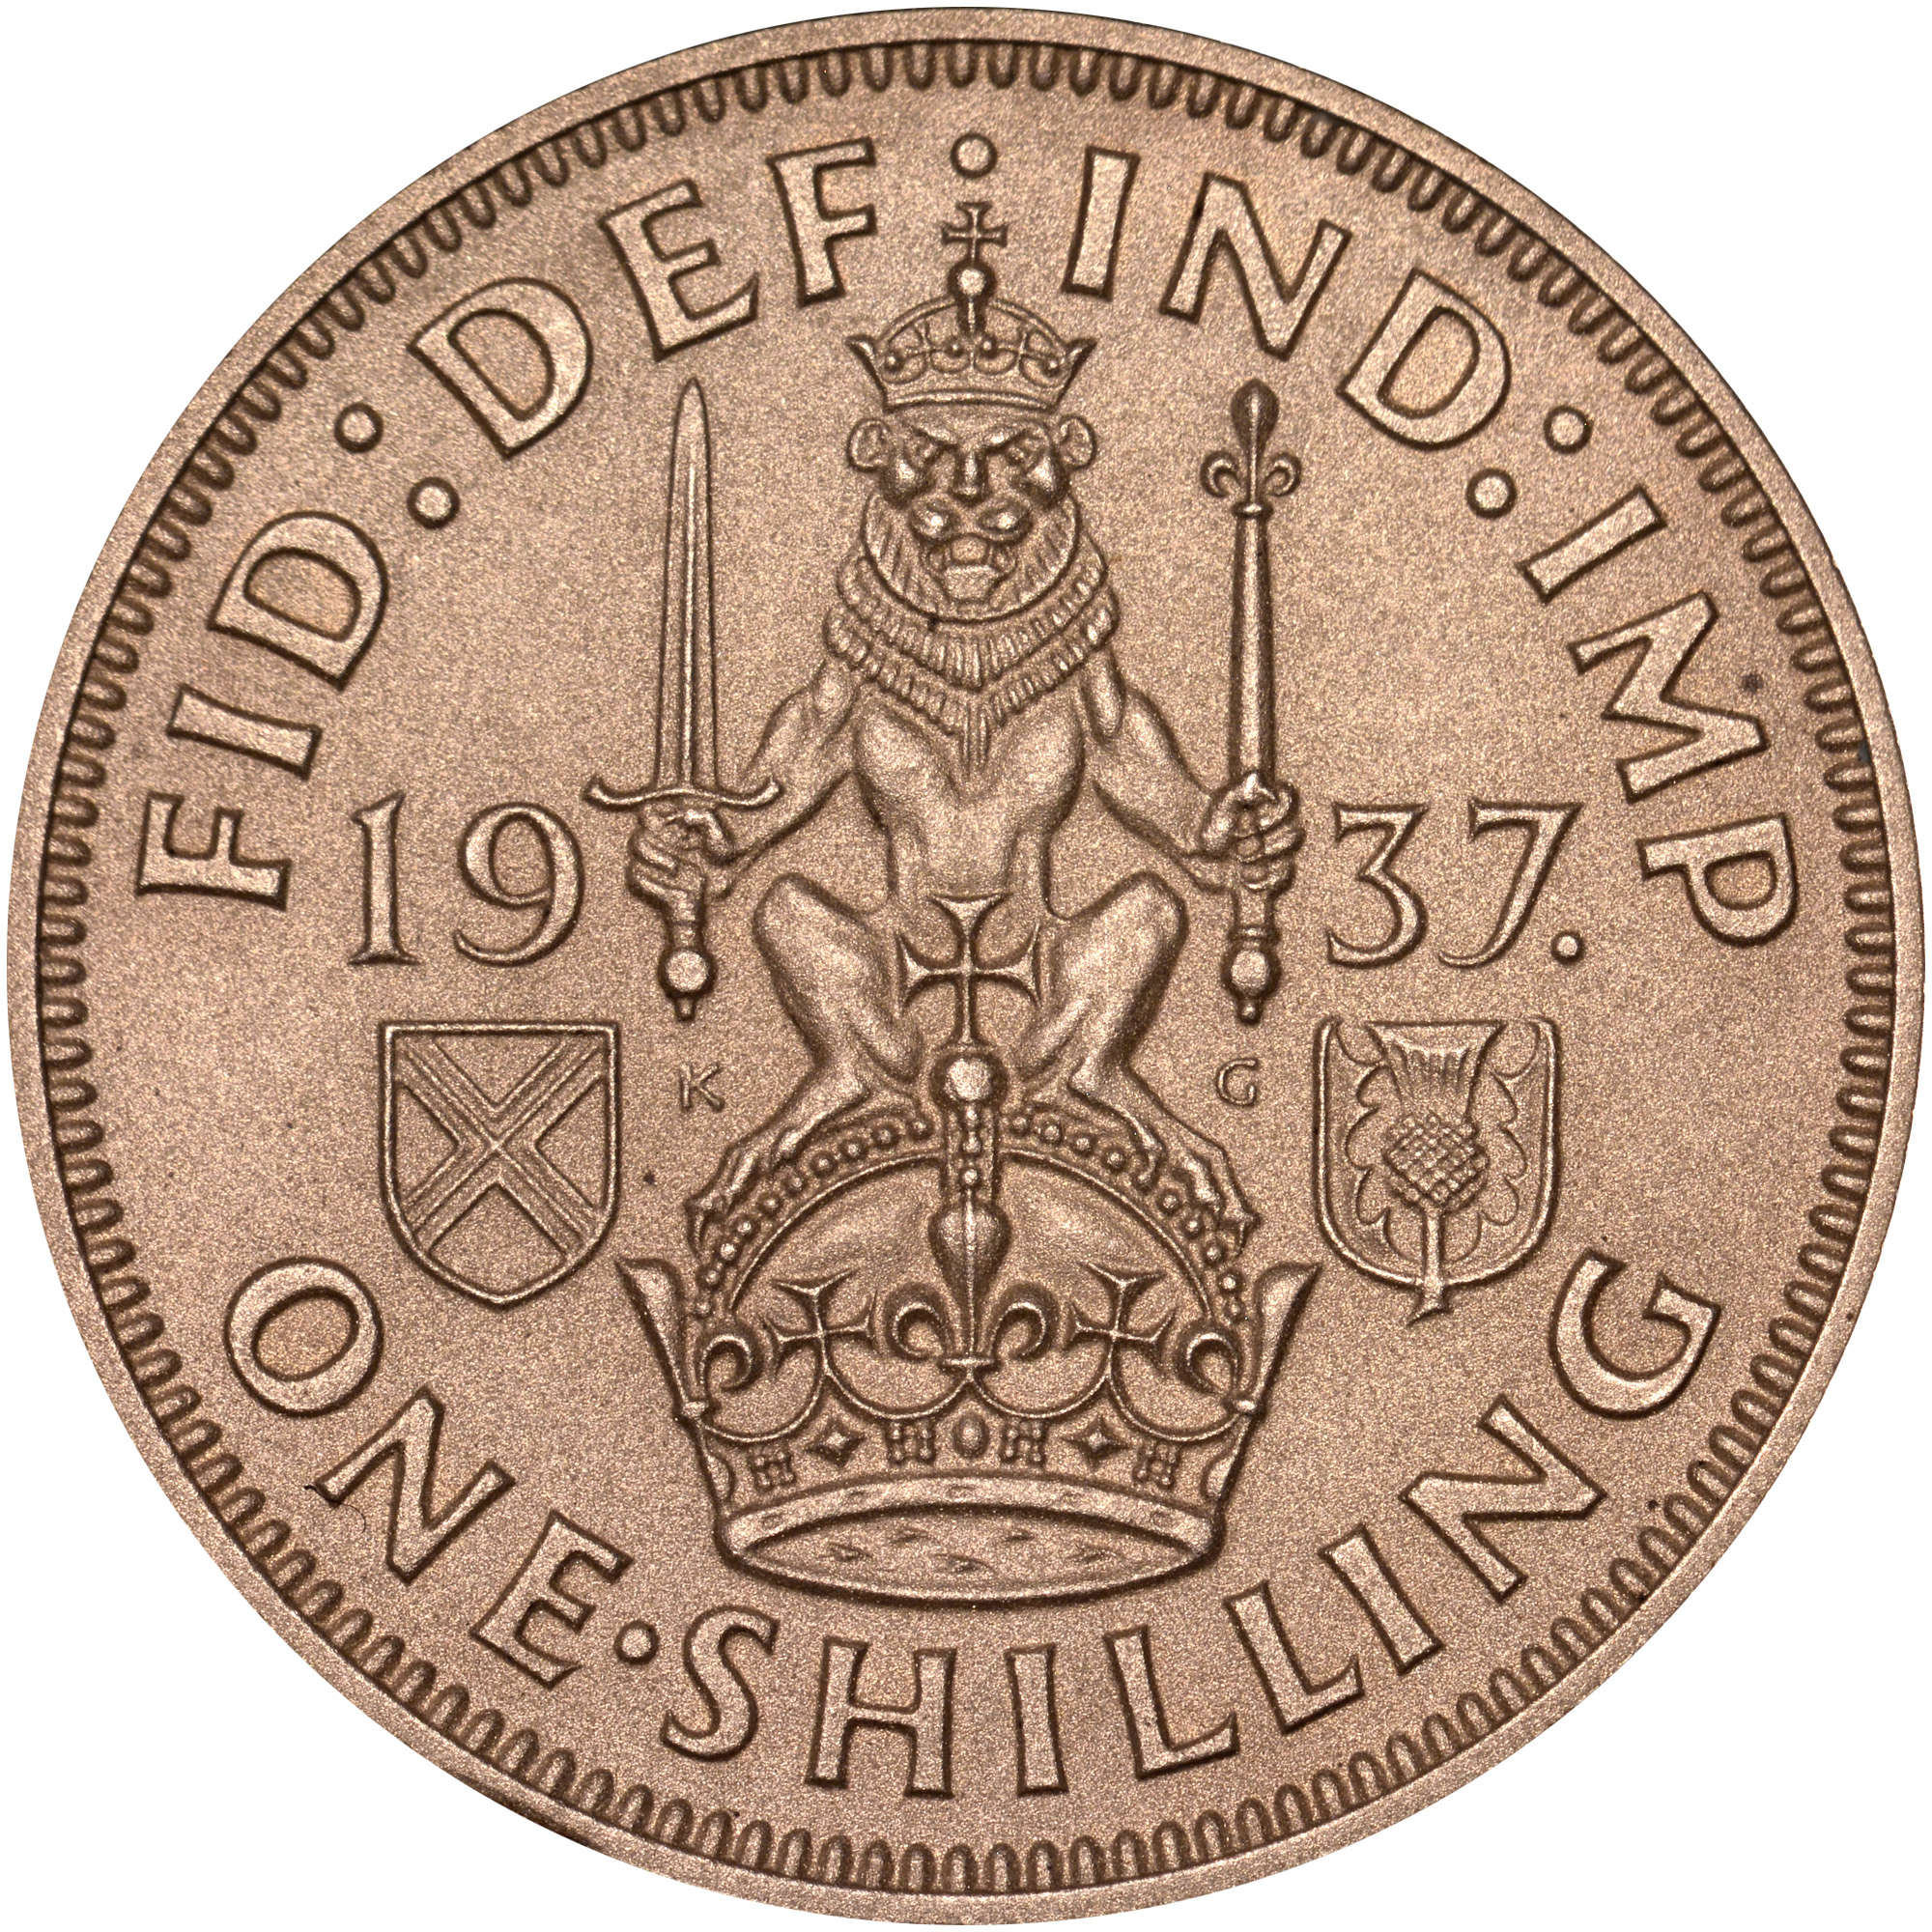 Great Britain 1939 Silver One Shilling Coin.